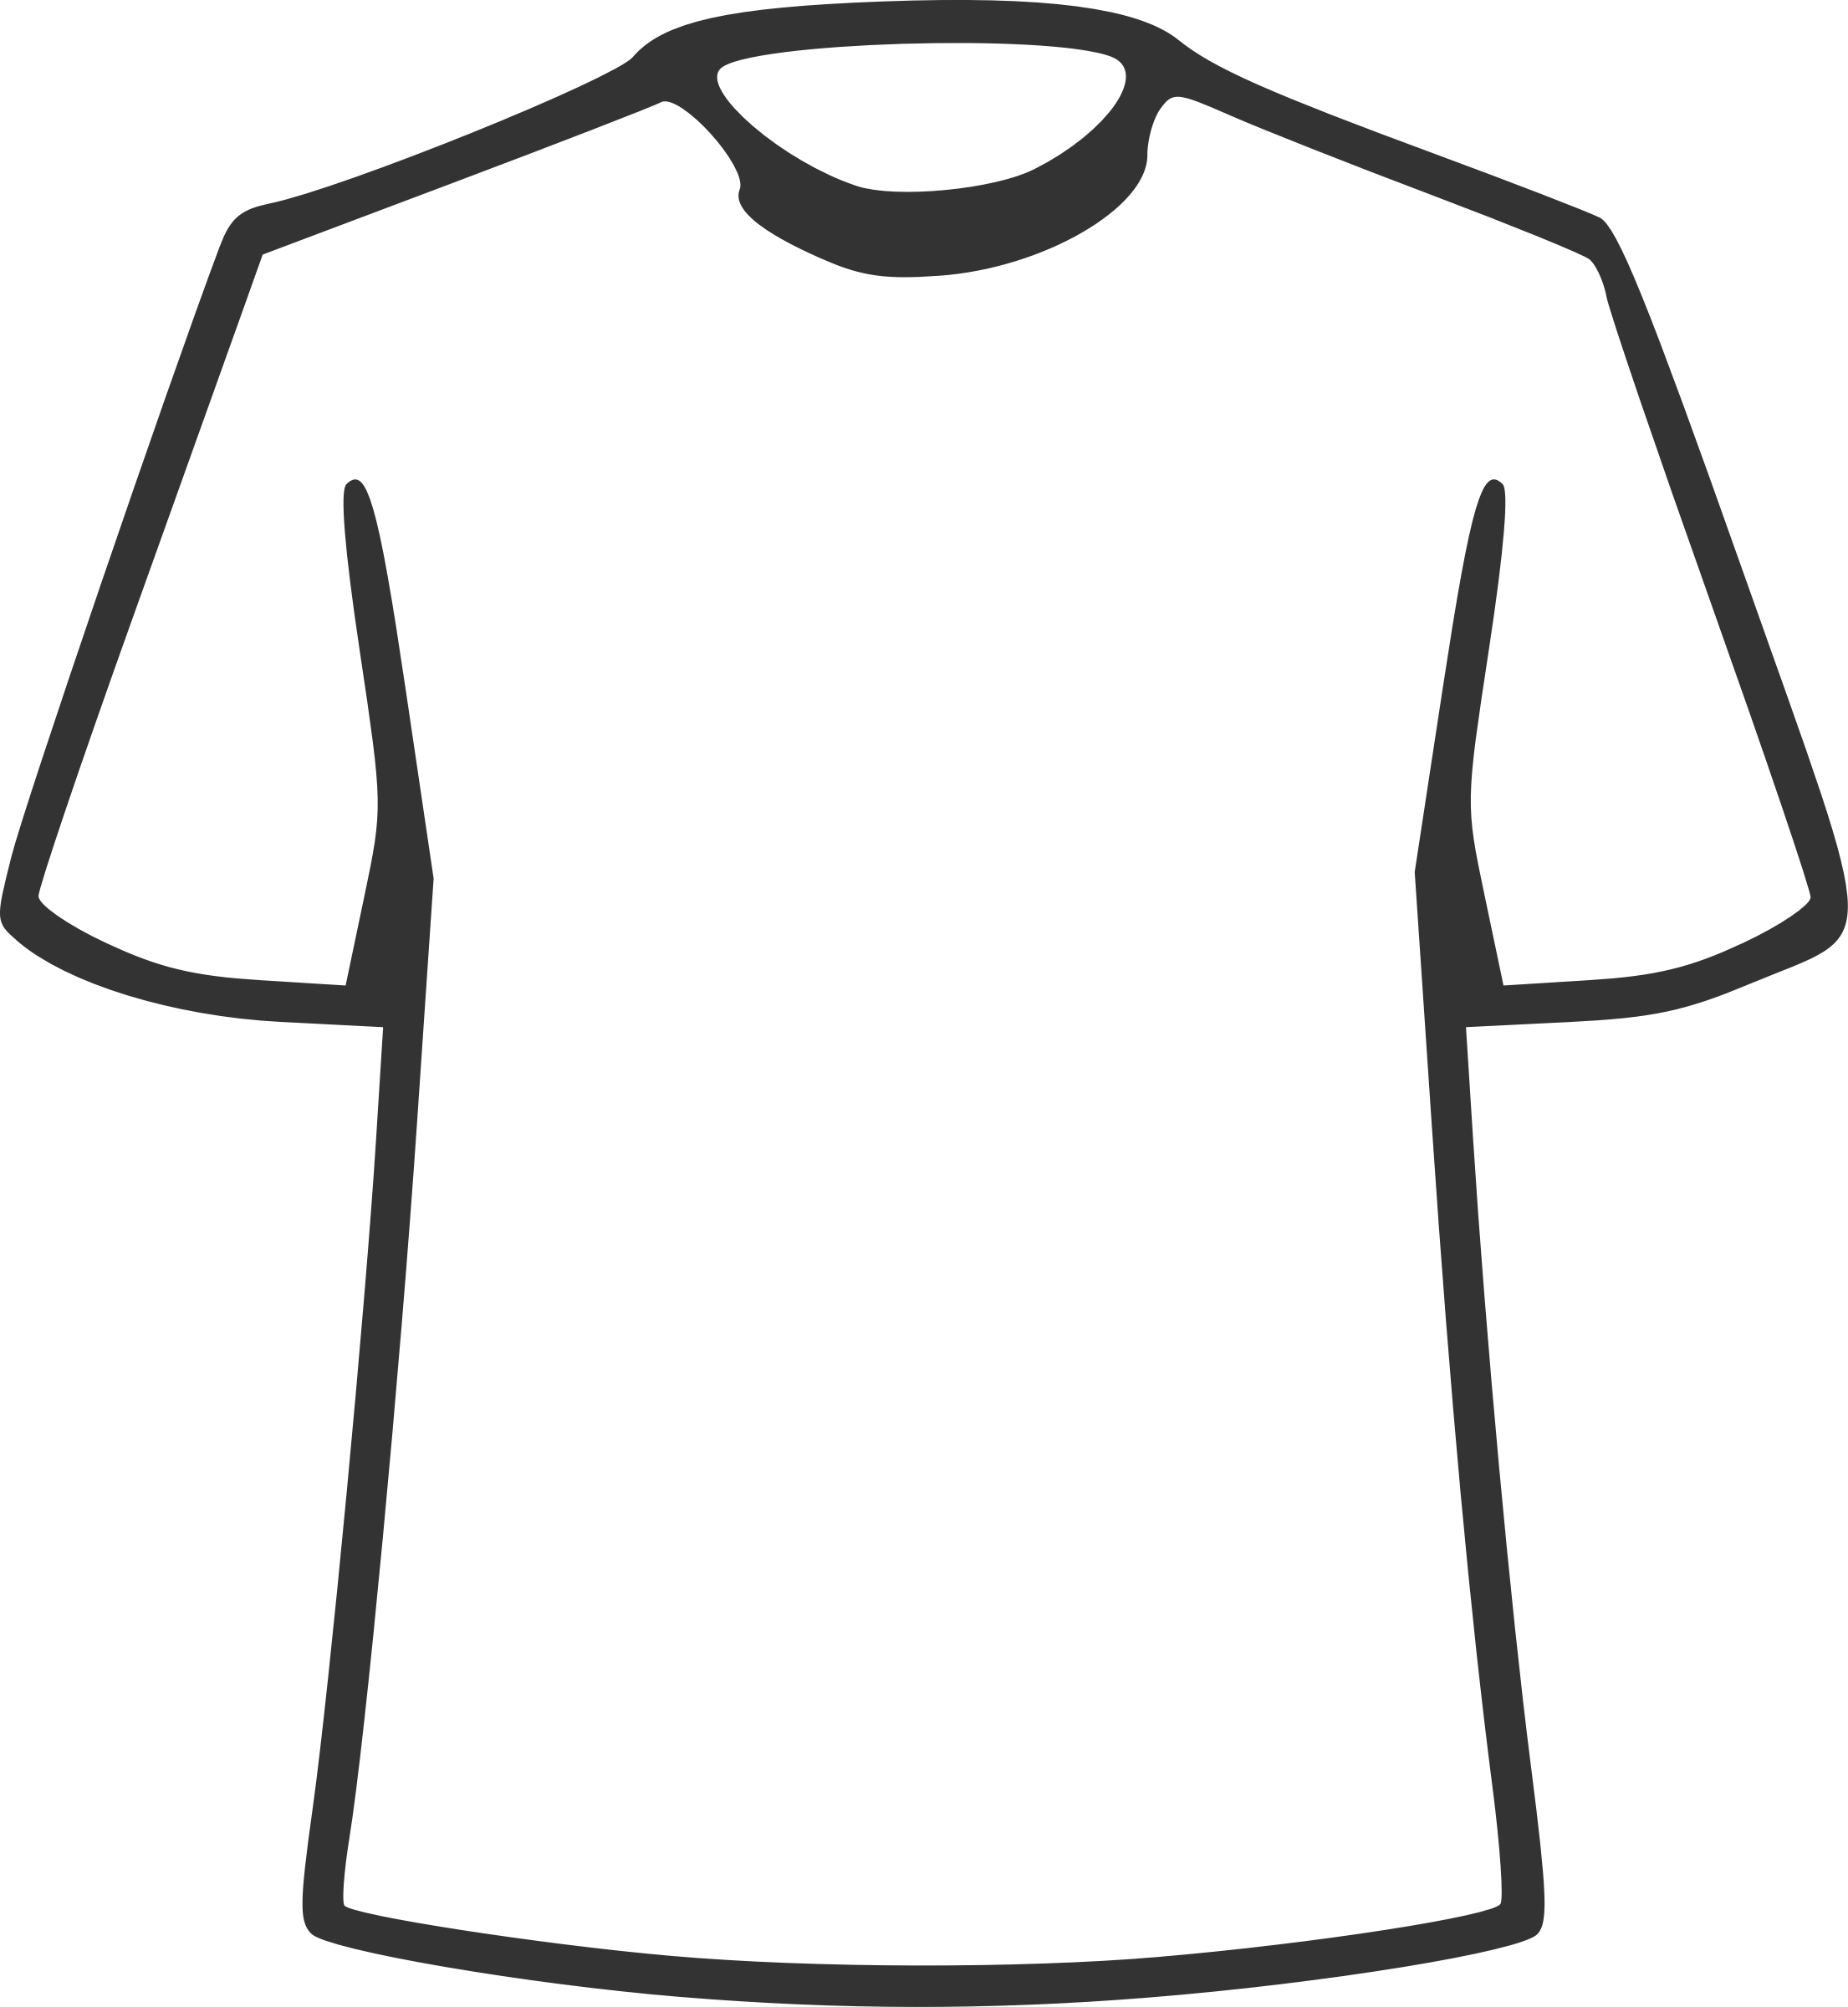 Simple big image png. Shirt clipart svg freeuse